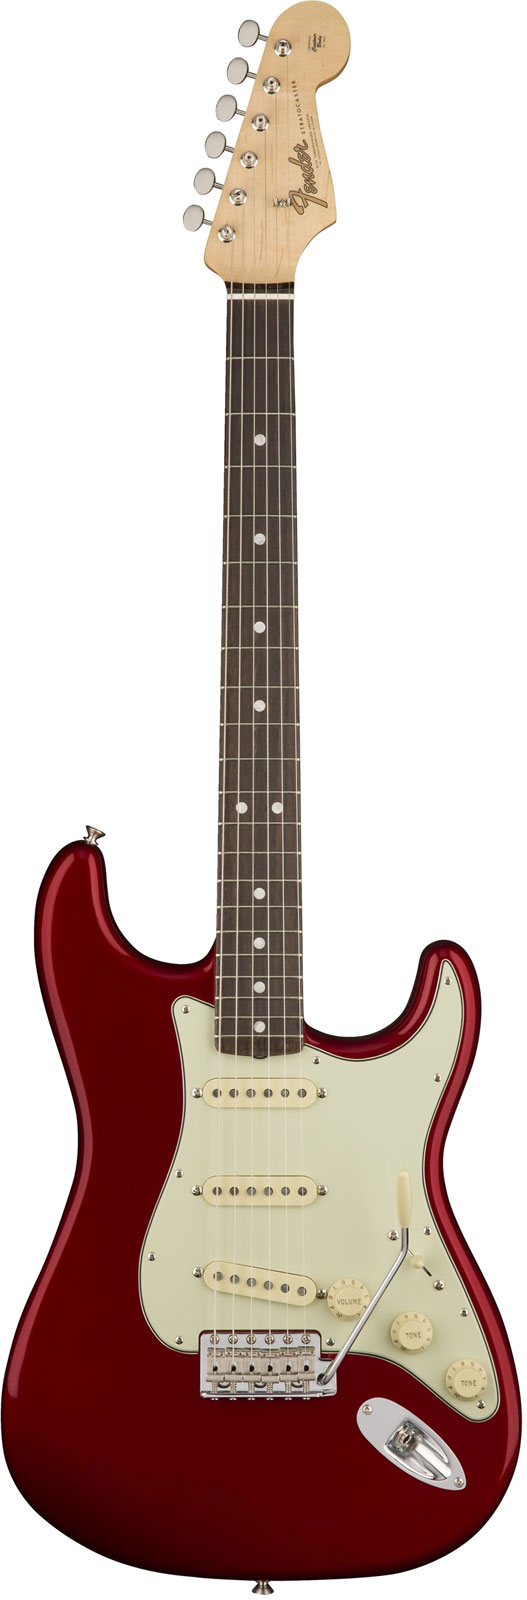 Fender American Original 60s Stratocaster Rw Candy Apple Red